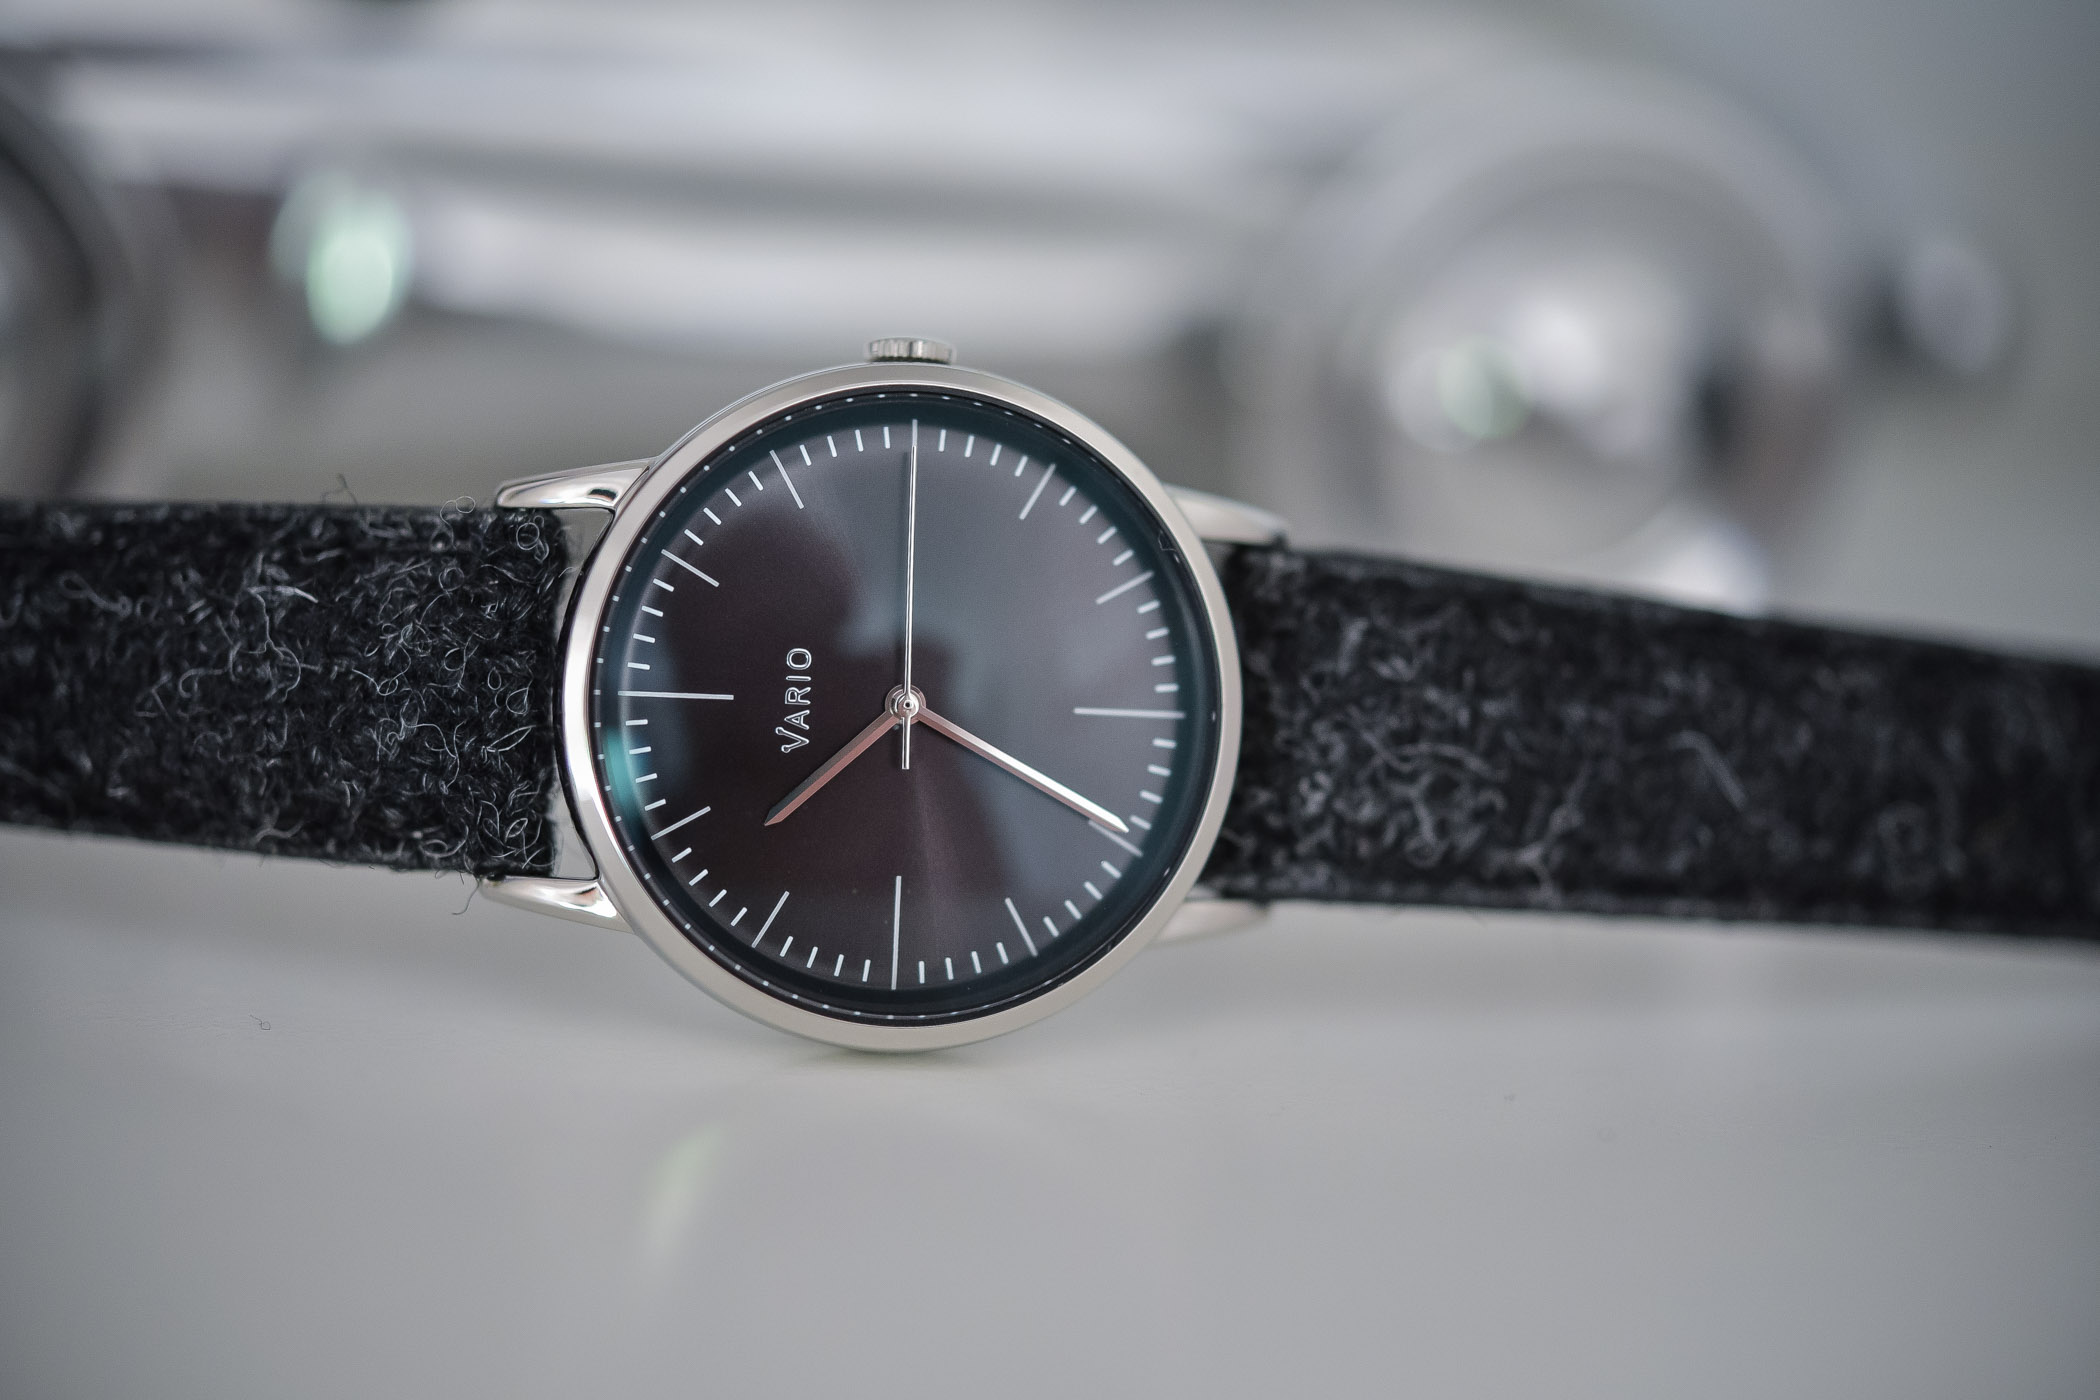 Vario Eclipse Watch hands-on